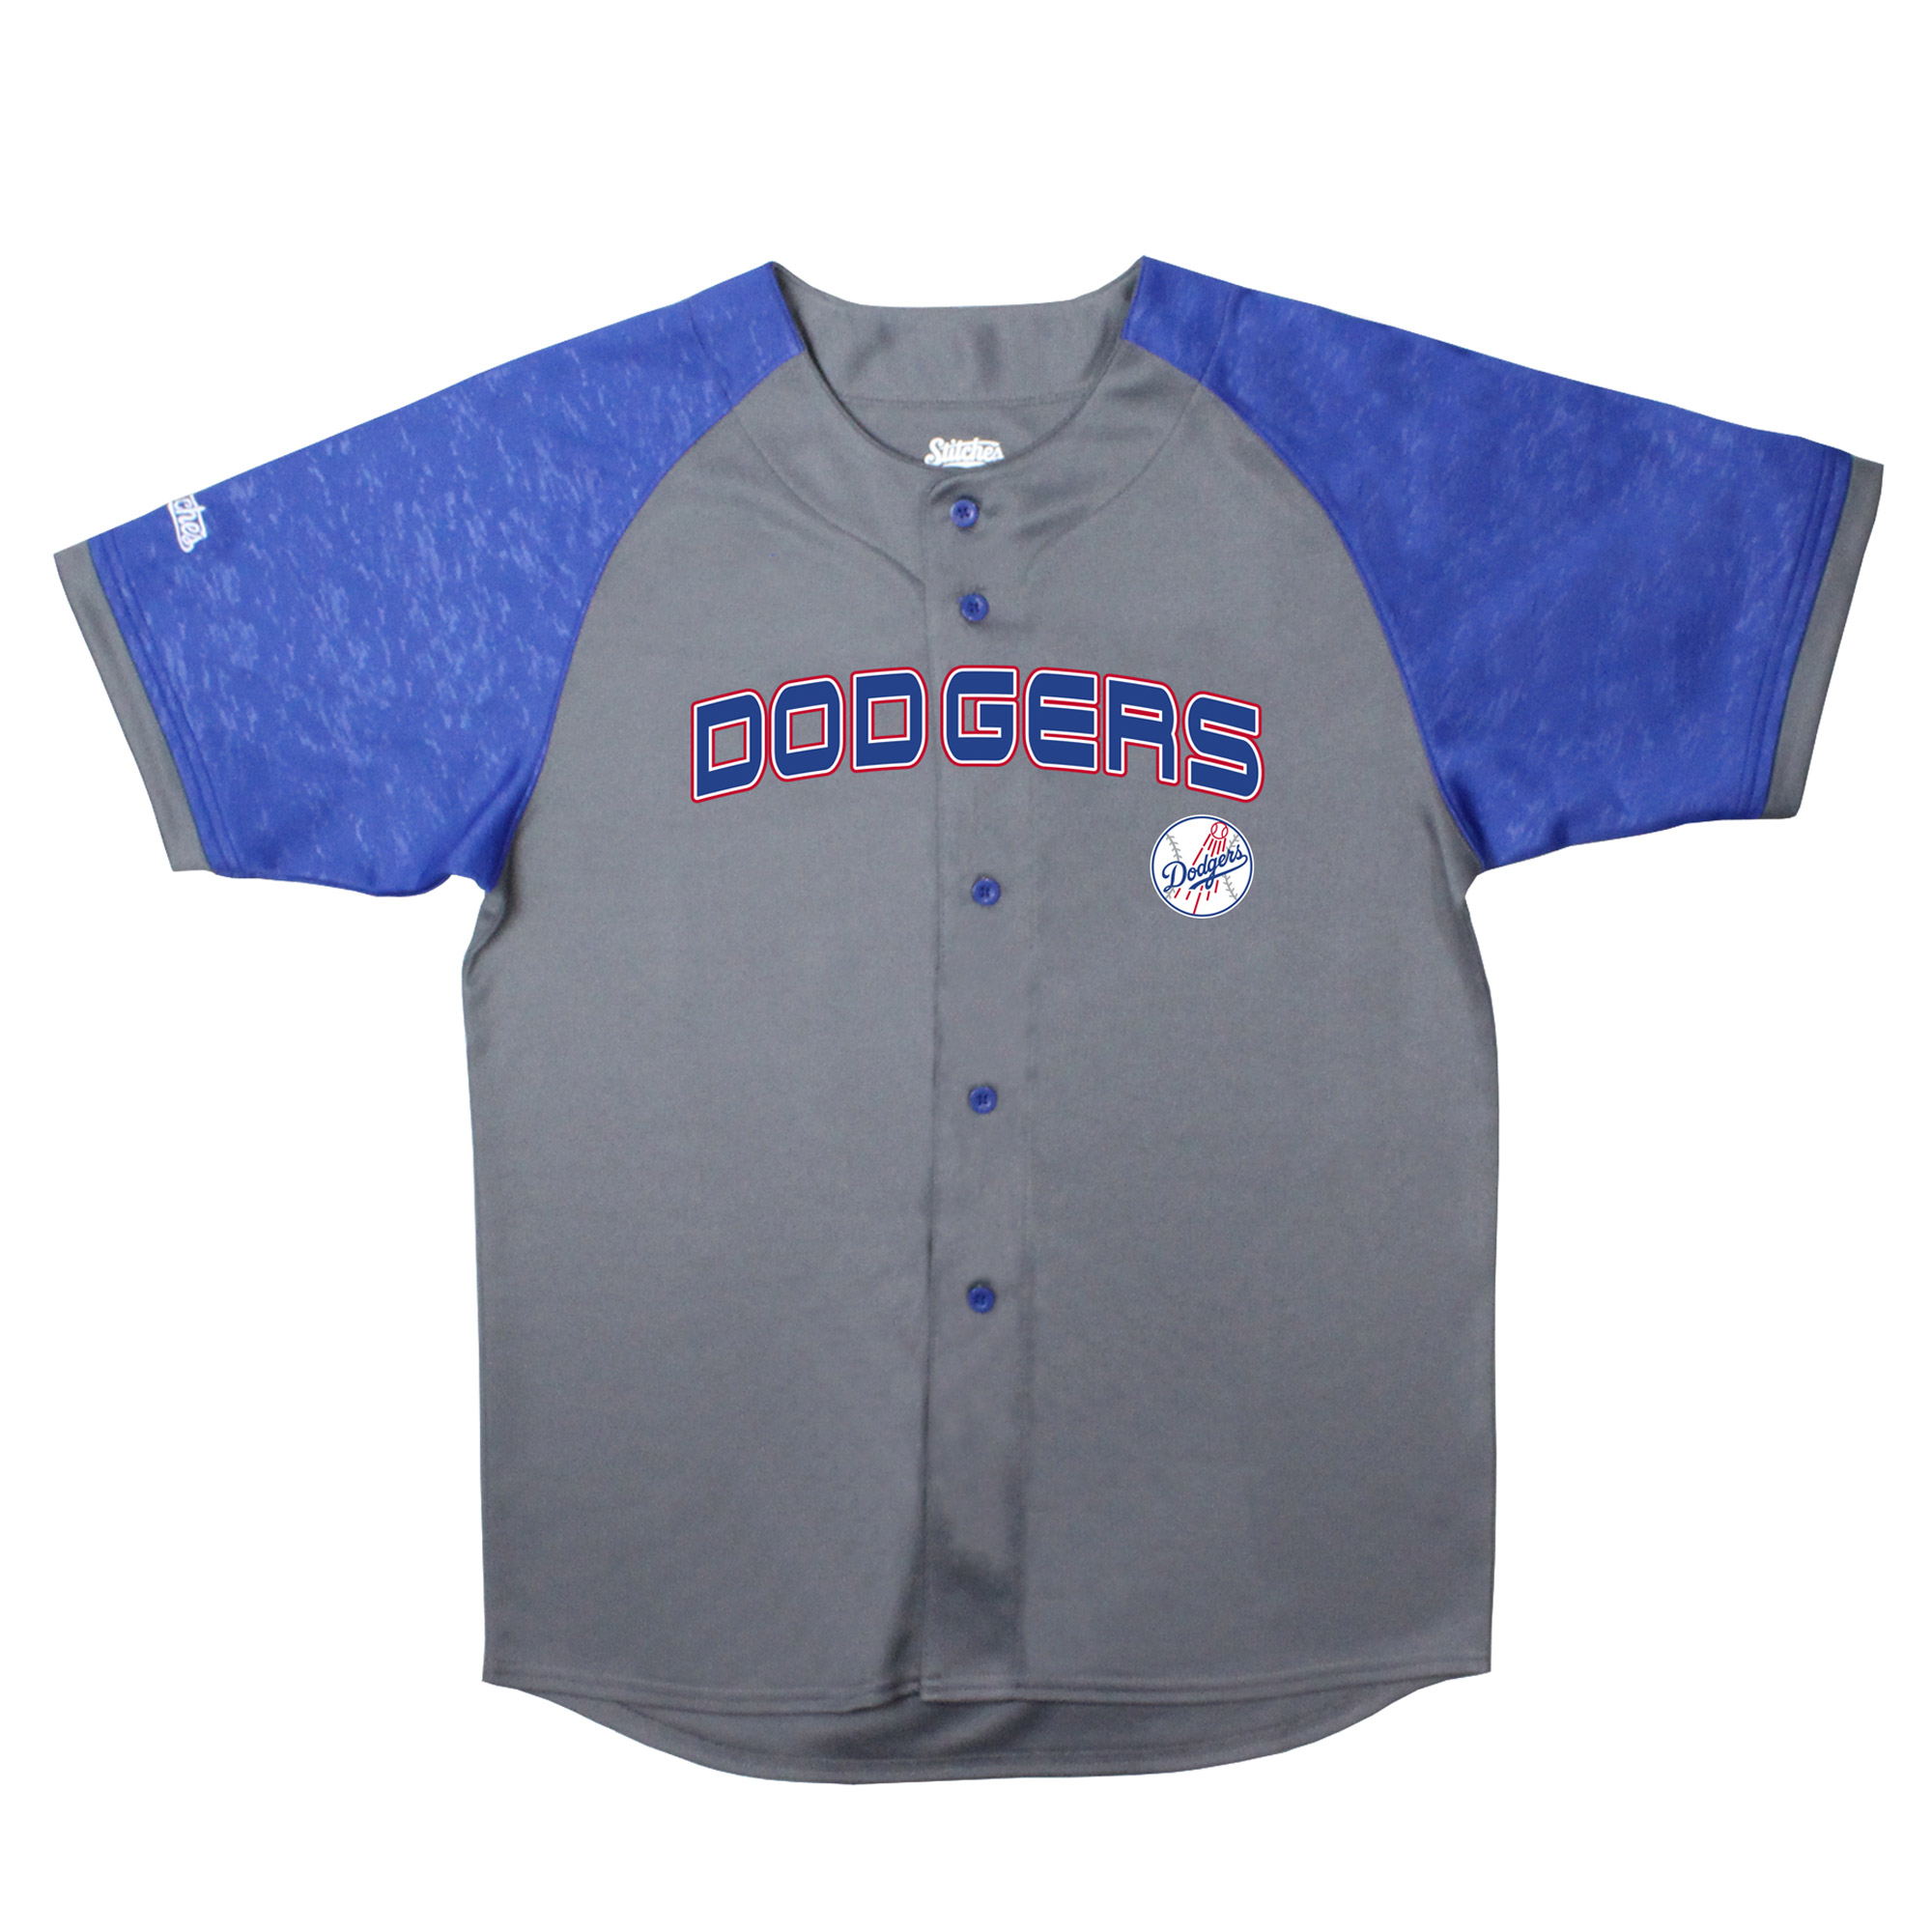 Los Angeles Dodgers Stitches Youth Glitch Jersey - Charcoal/Royal